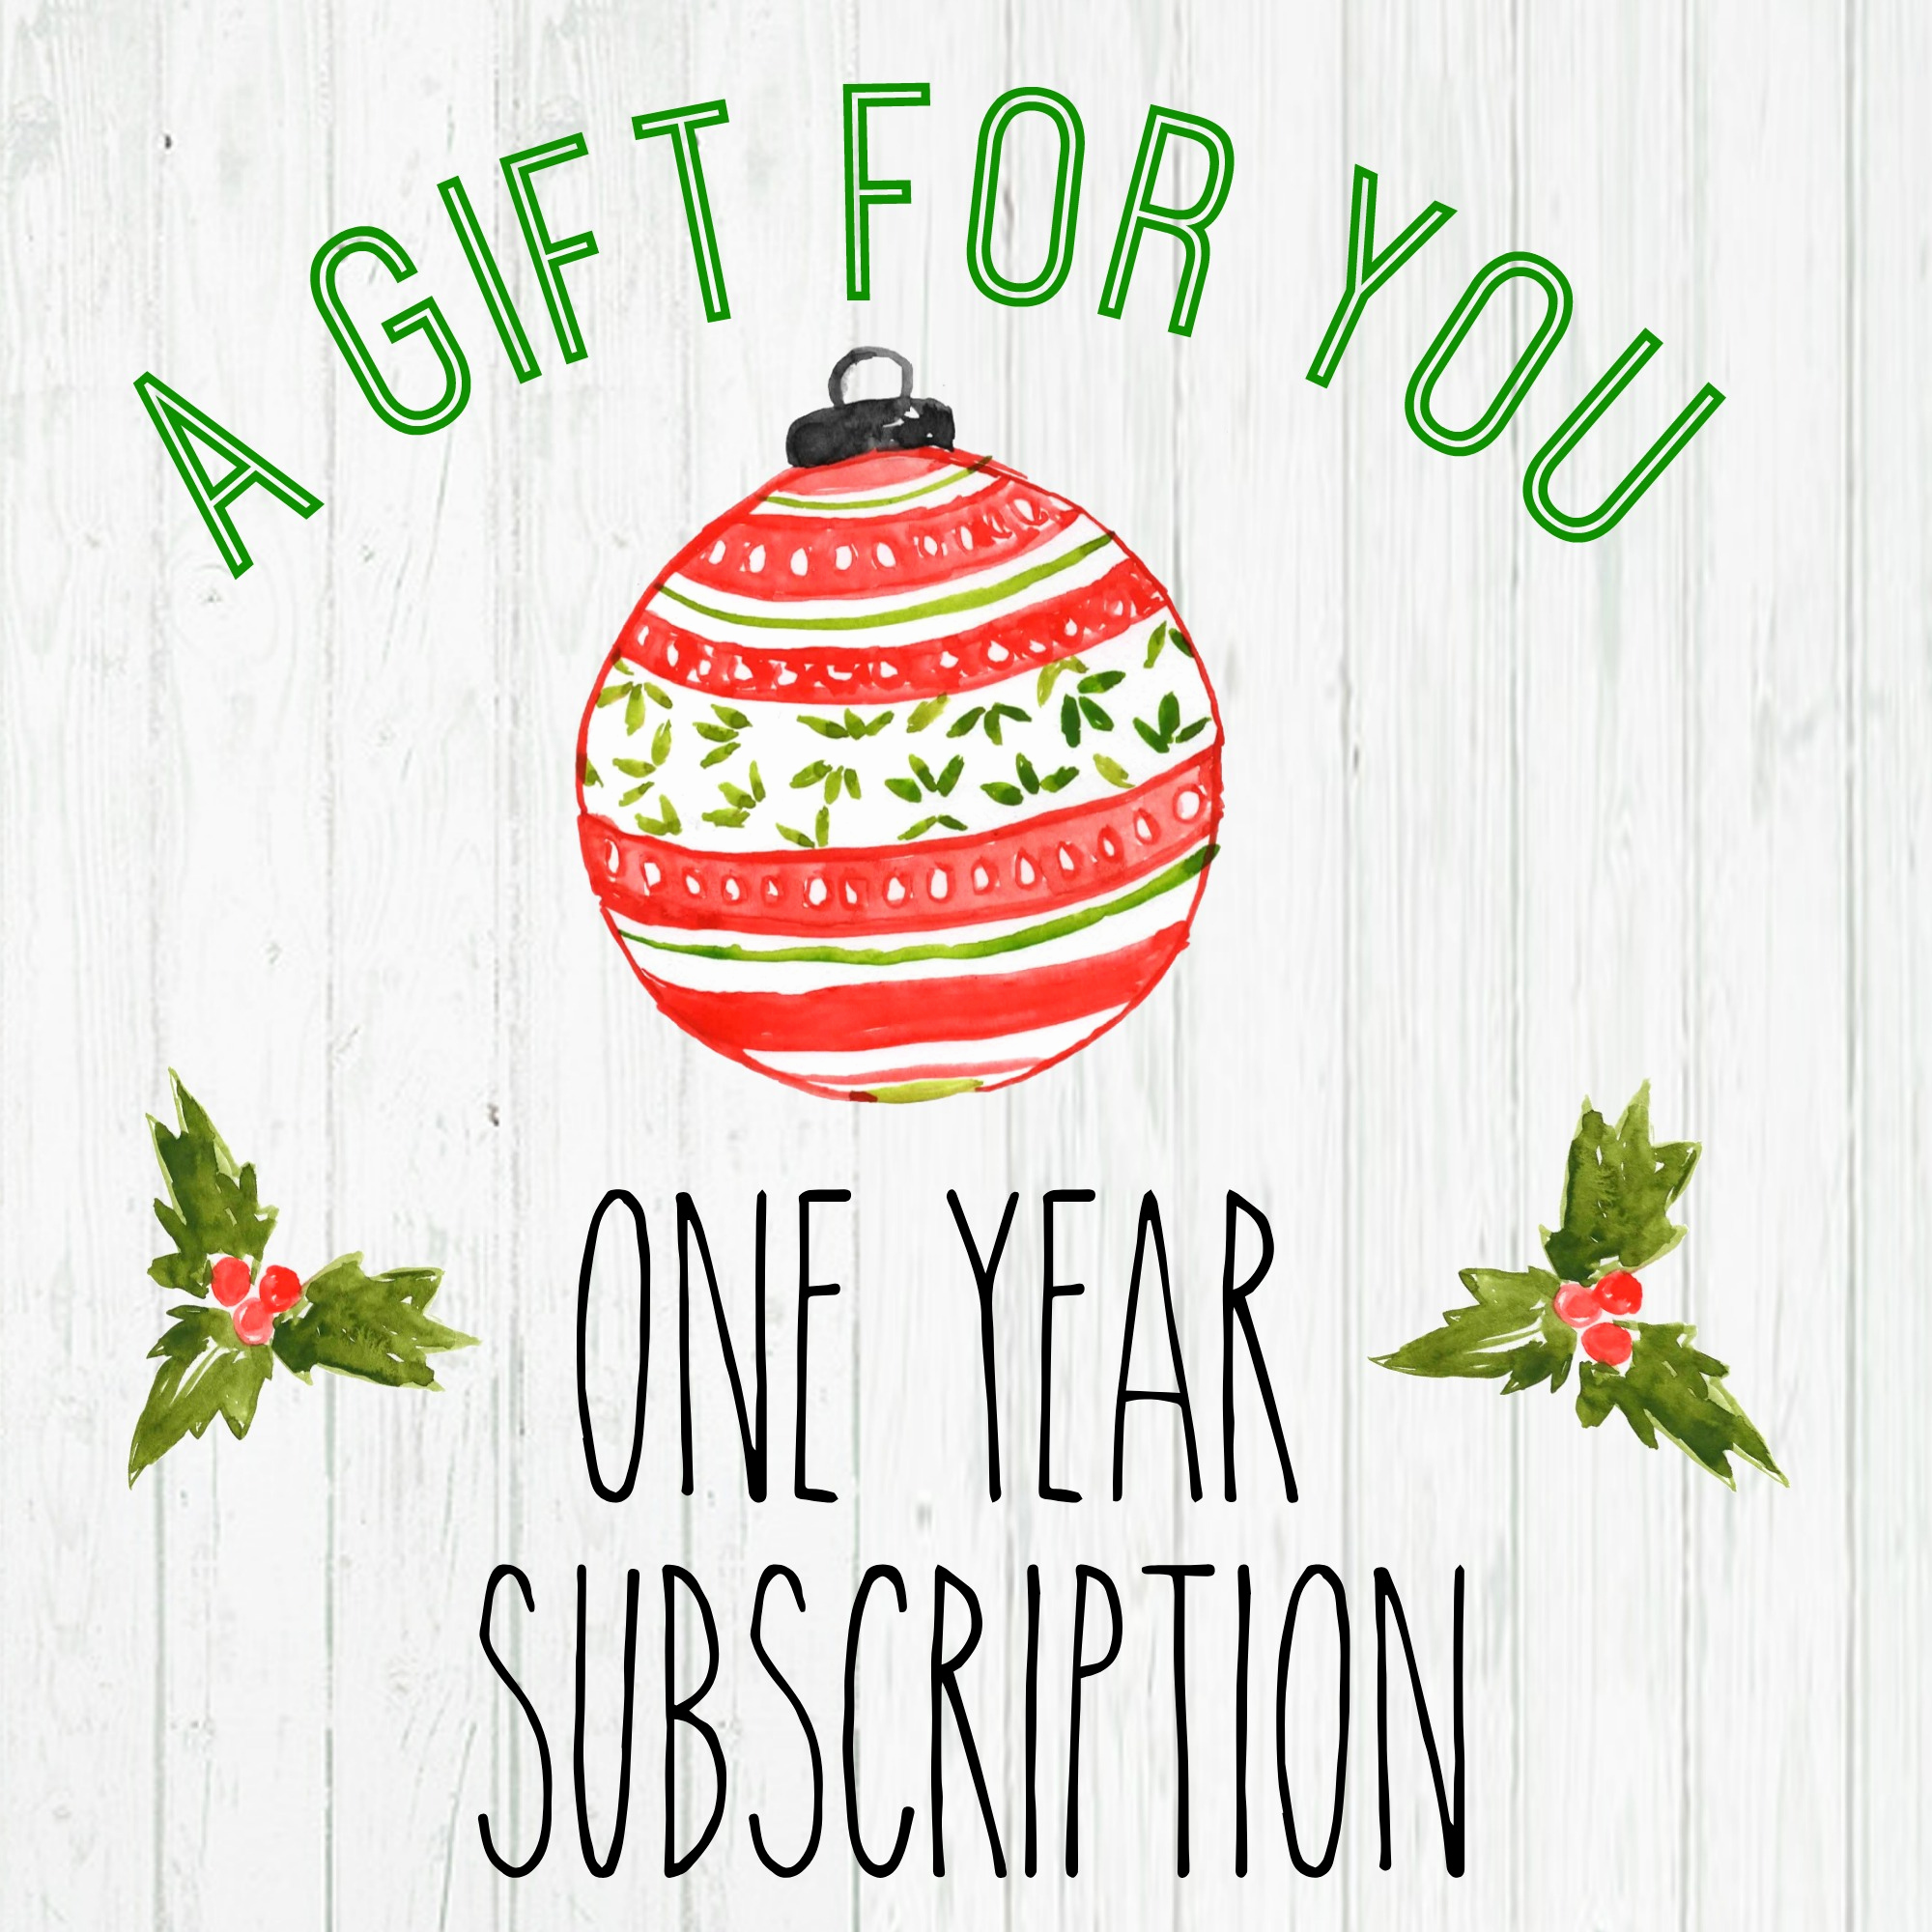 Magazine Subscription Gift Certificate Template Elegant Gift A Magazine Subscription with Our Free Printable Cards